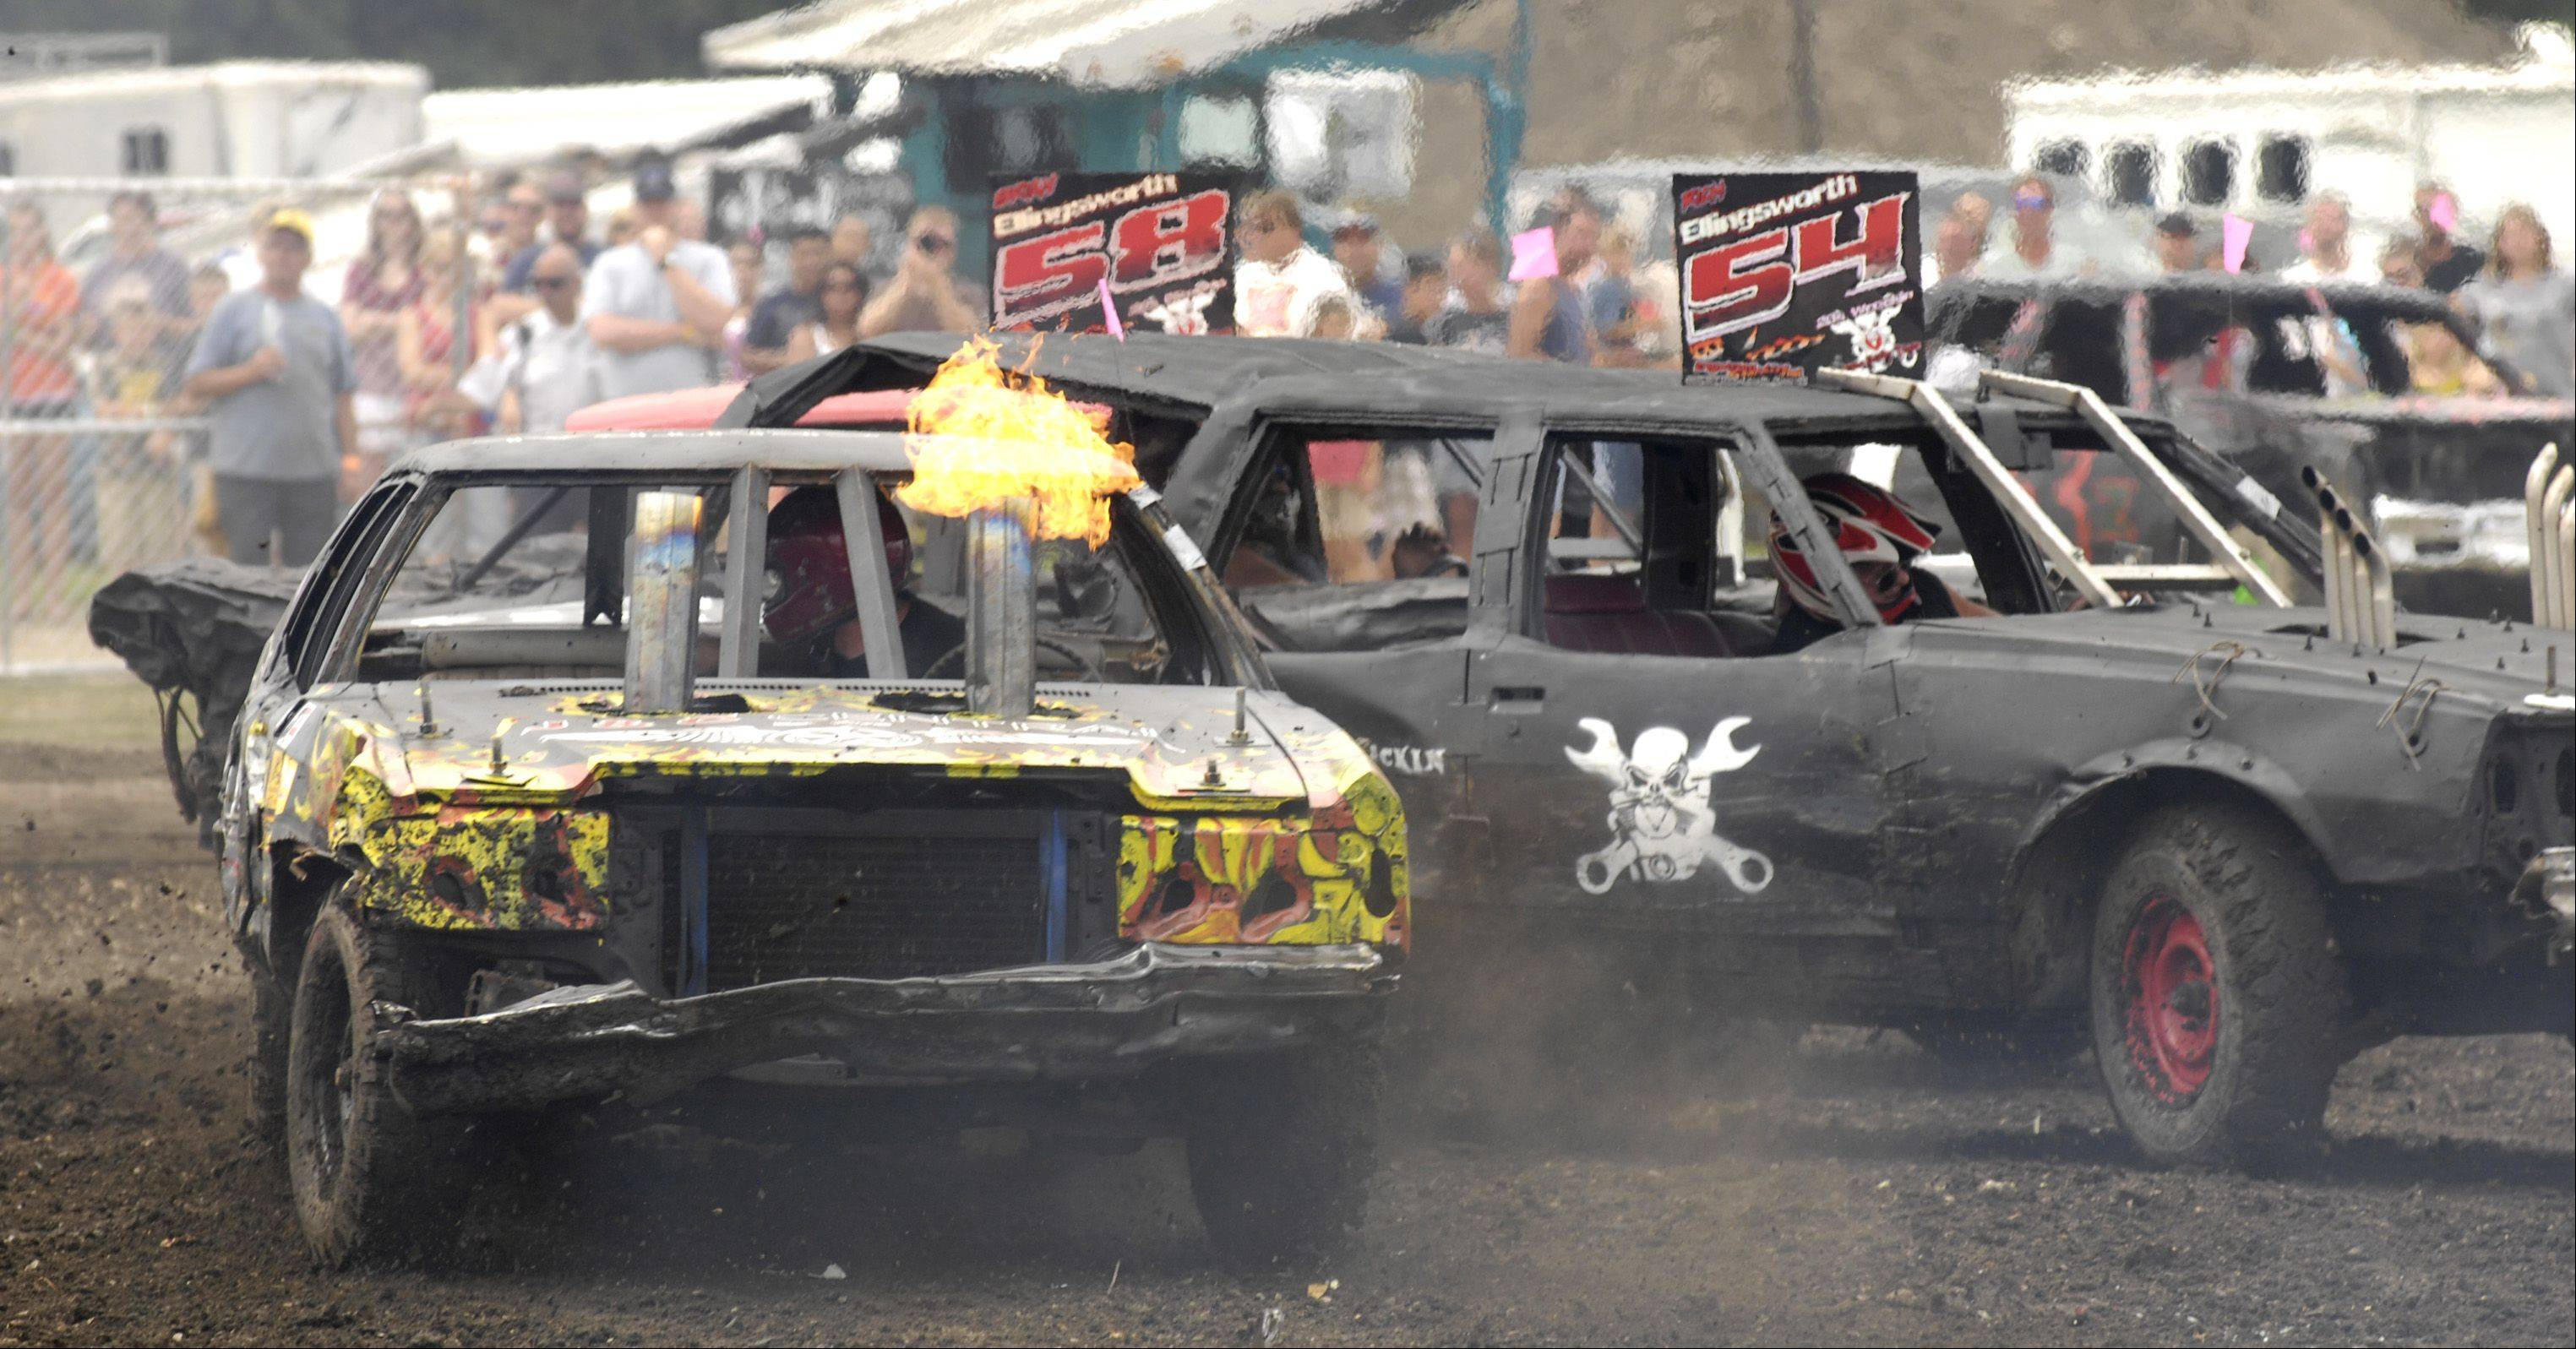 Flames shoot from the exhaust of a car during the annual demolition derby Sunday at the DuPage County Fair.